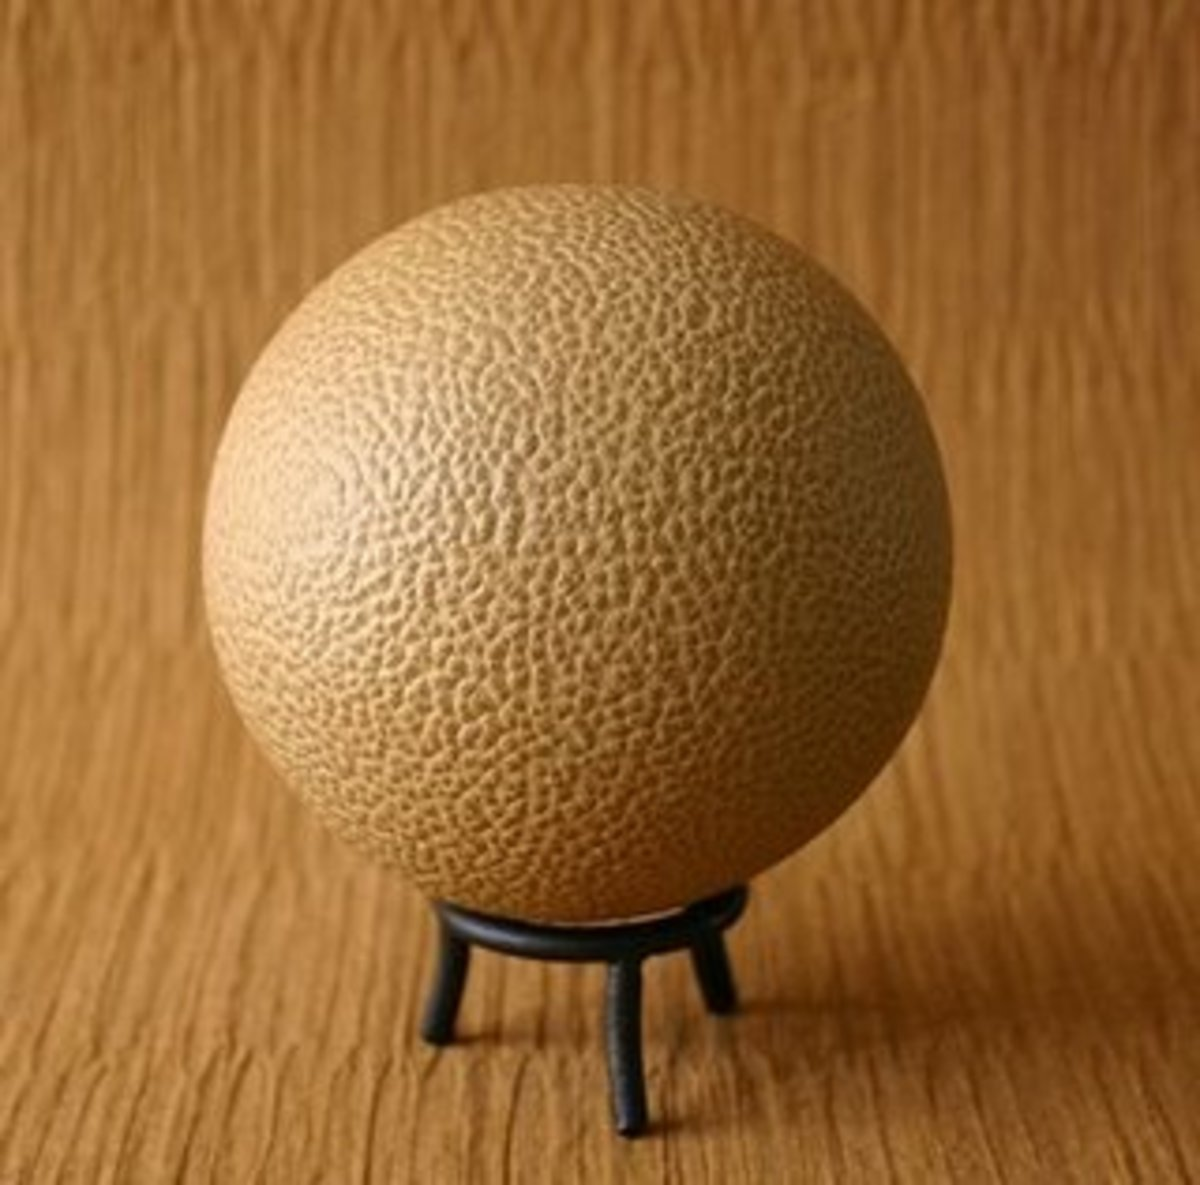 how to make a polished ball of dirt